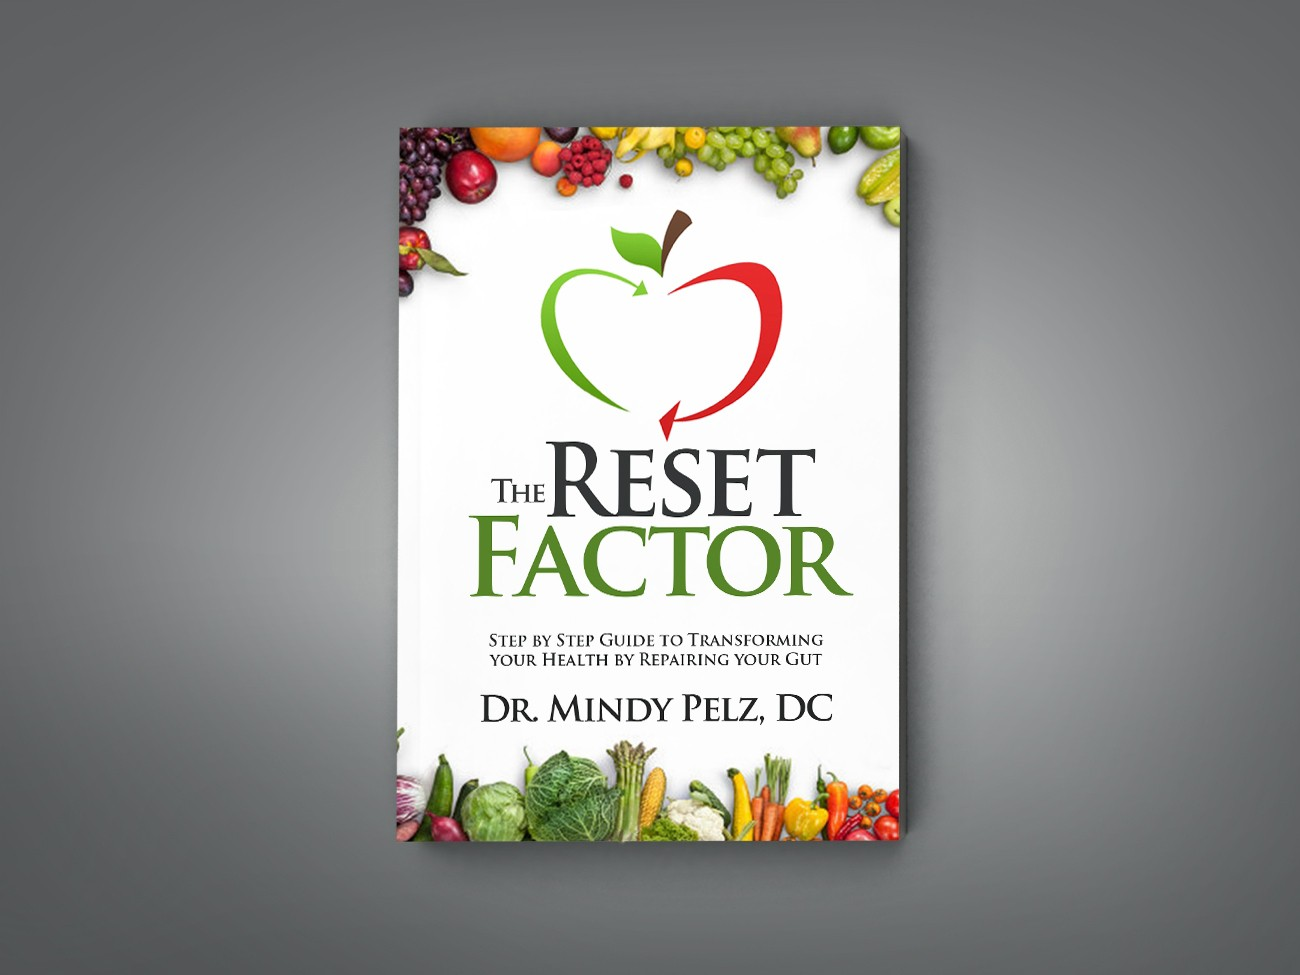 Cover for The Reset Factor: A Step By Step Guide To Transforming Your Health by Repairing Your Gut